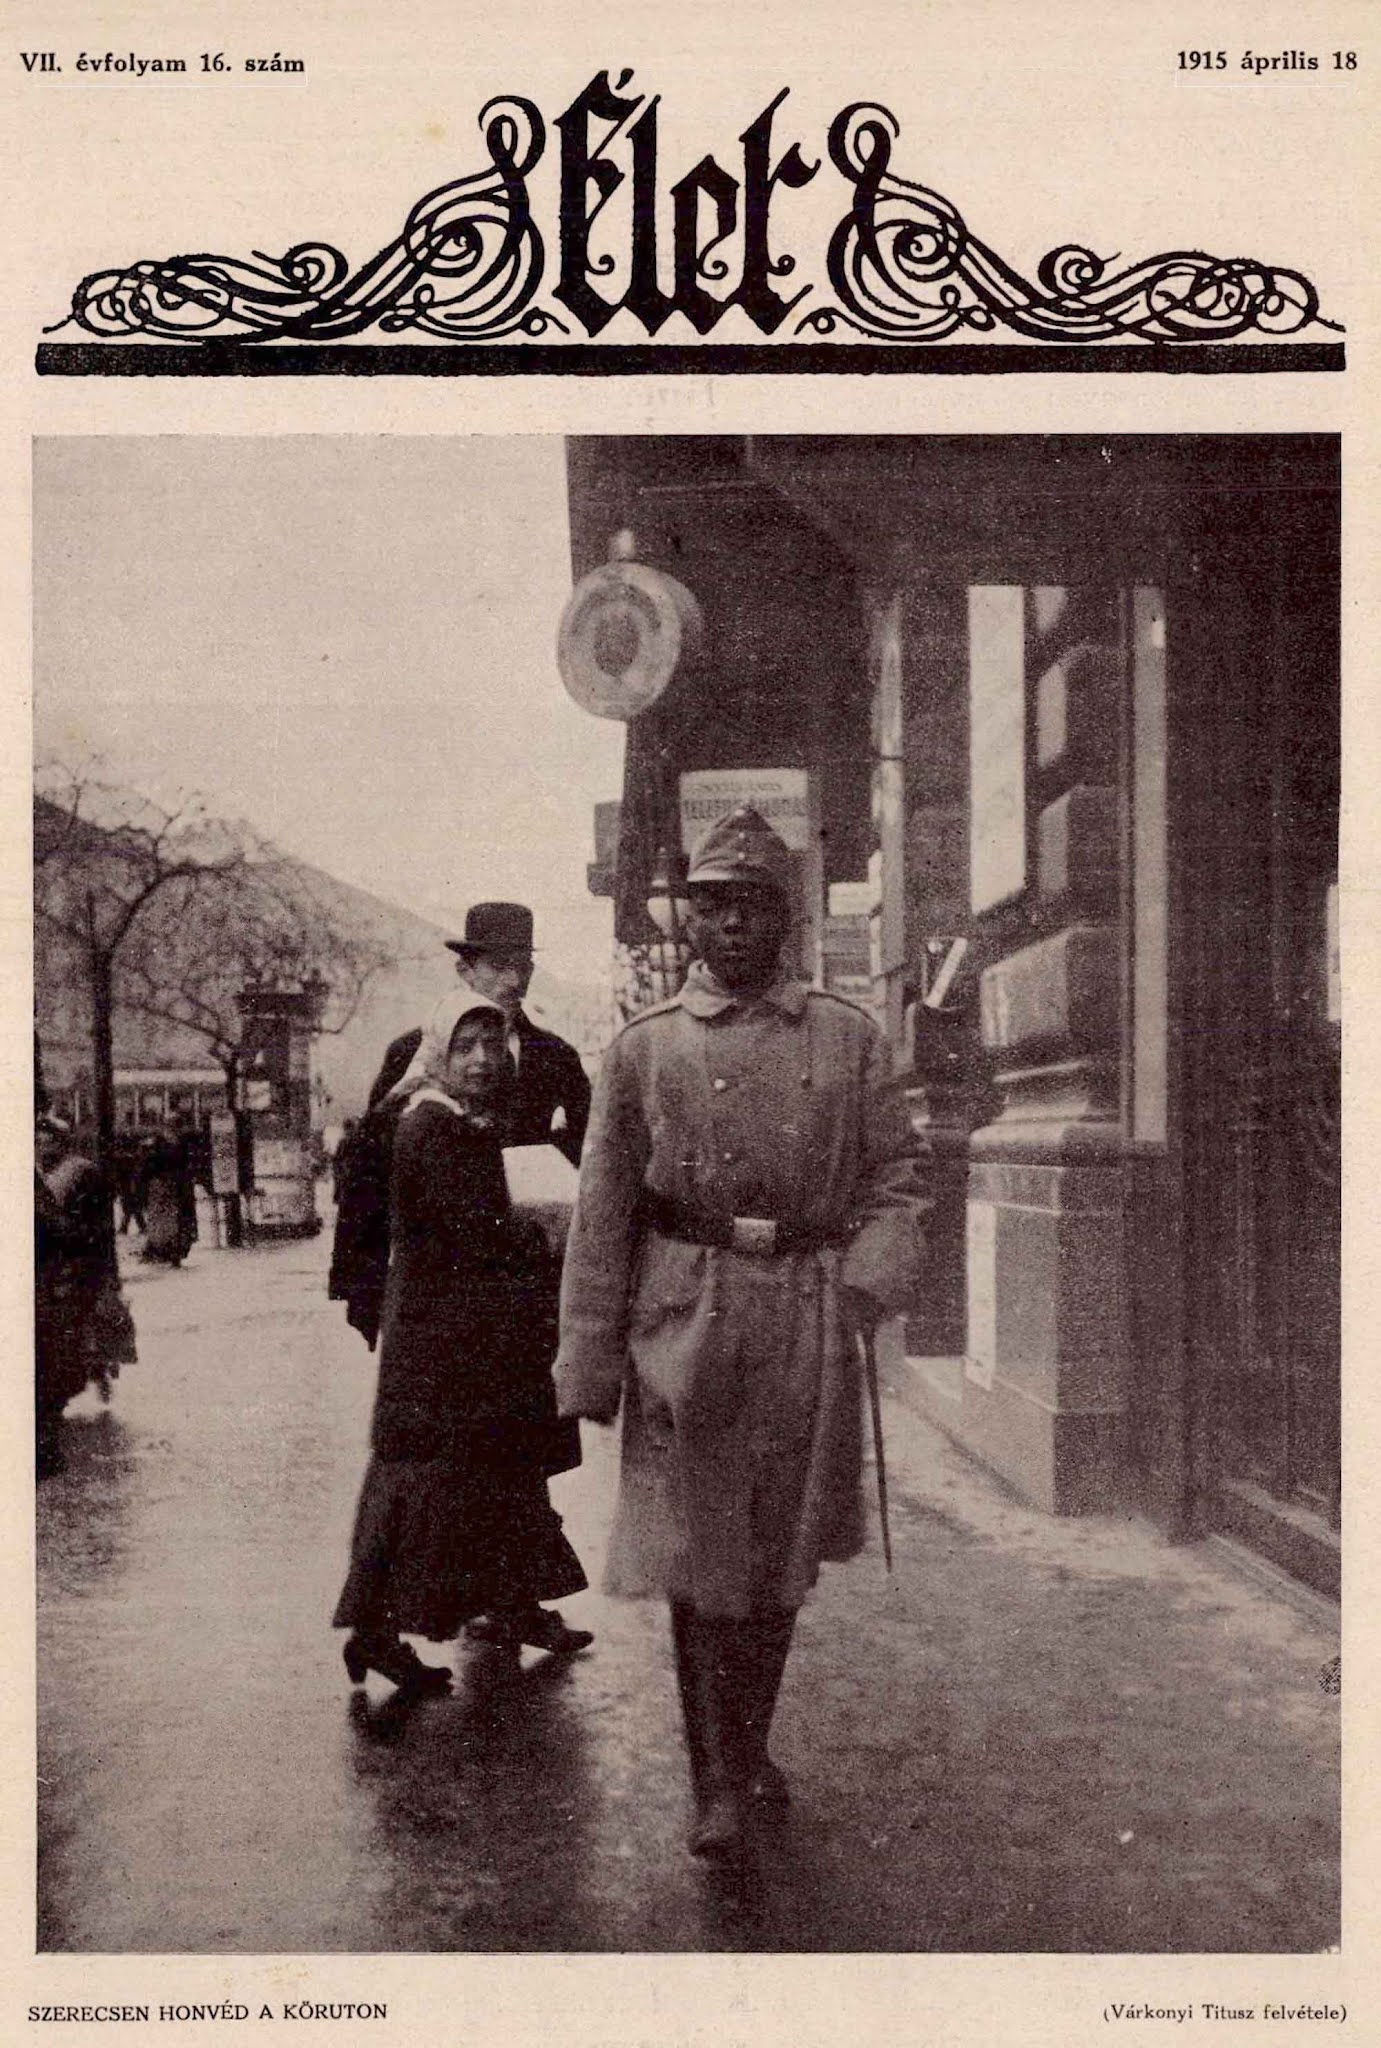 The only black soldier of the Austro-Hungarian Empire, 1915